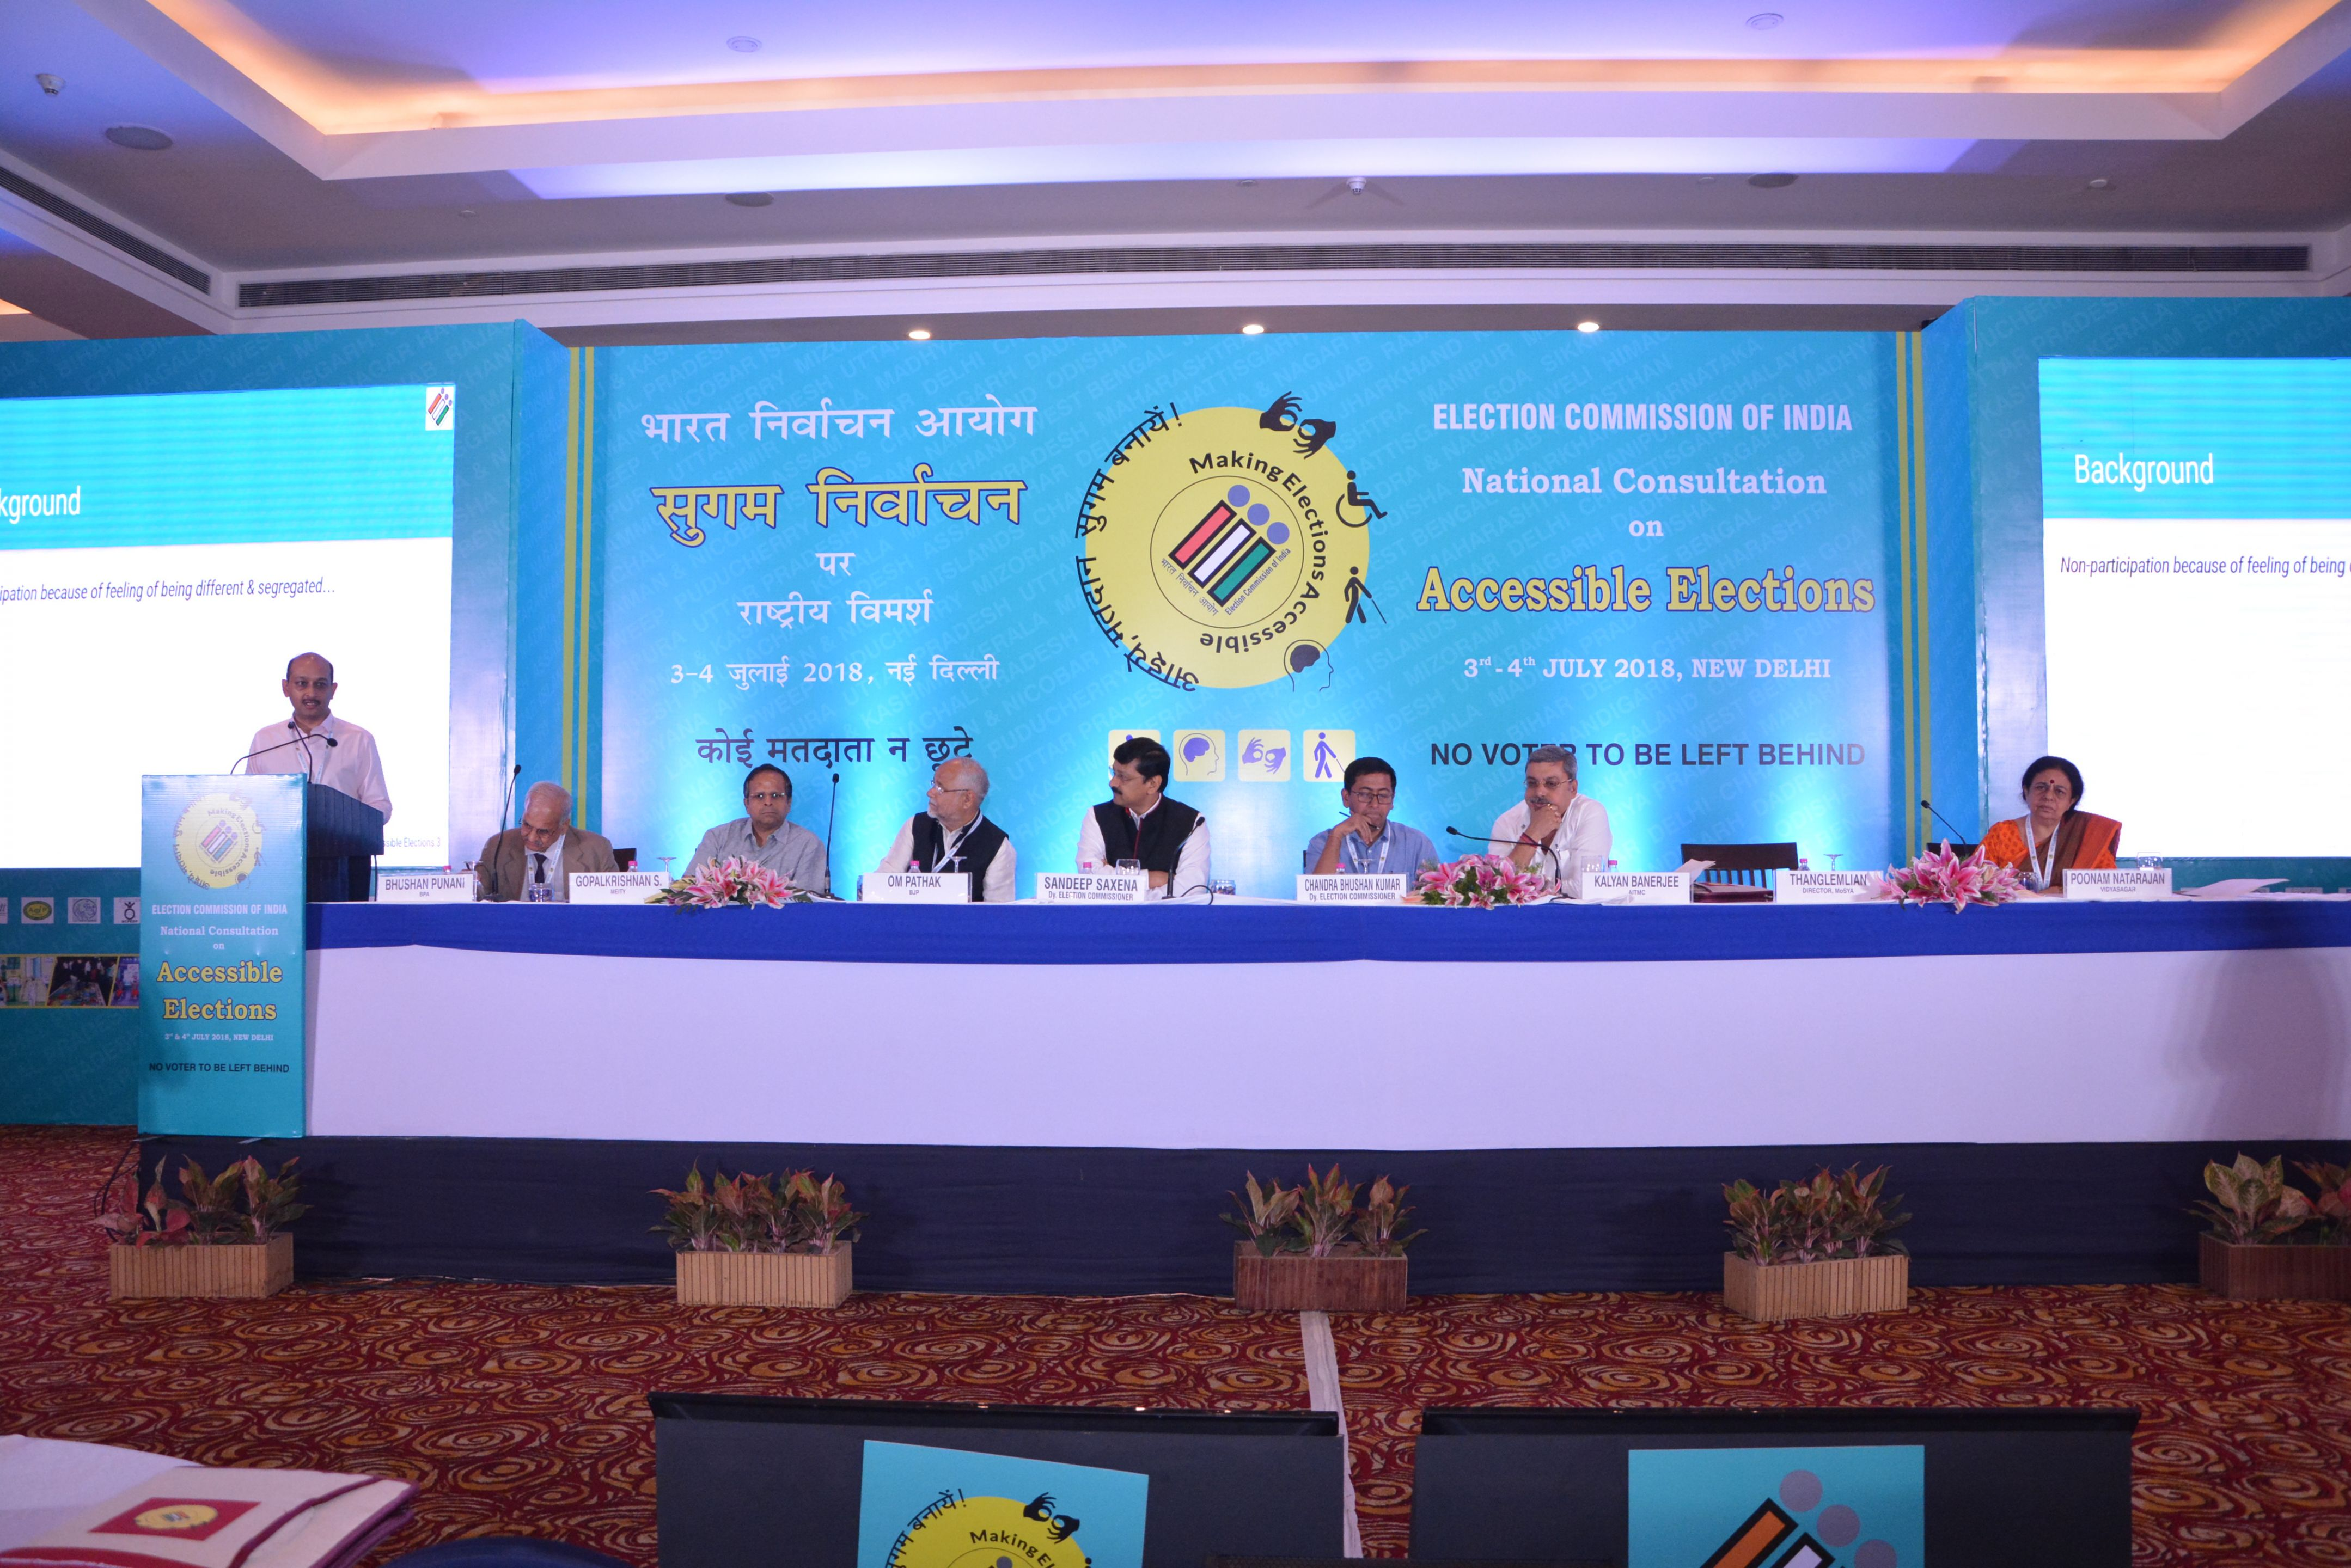 Day 2 - Panelists for the first thematic discussion